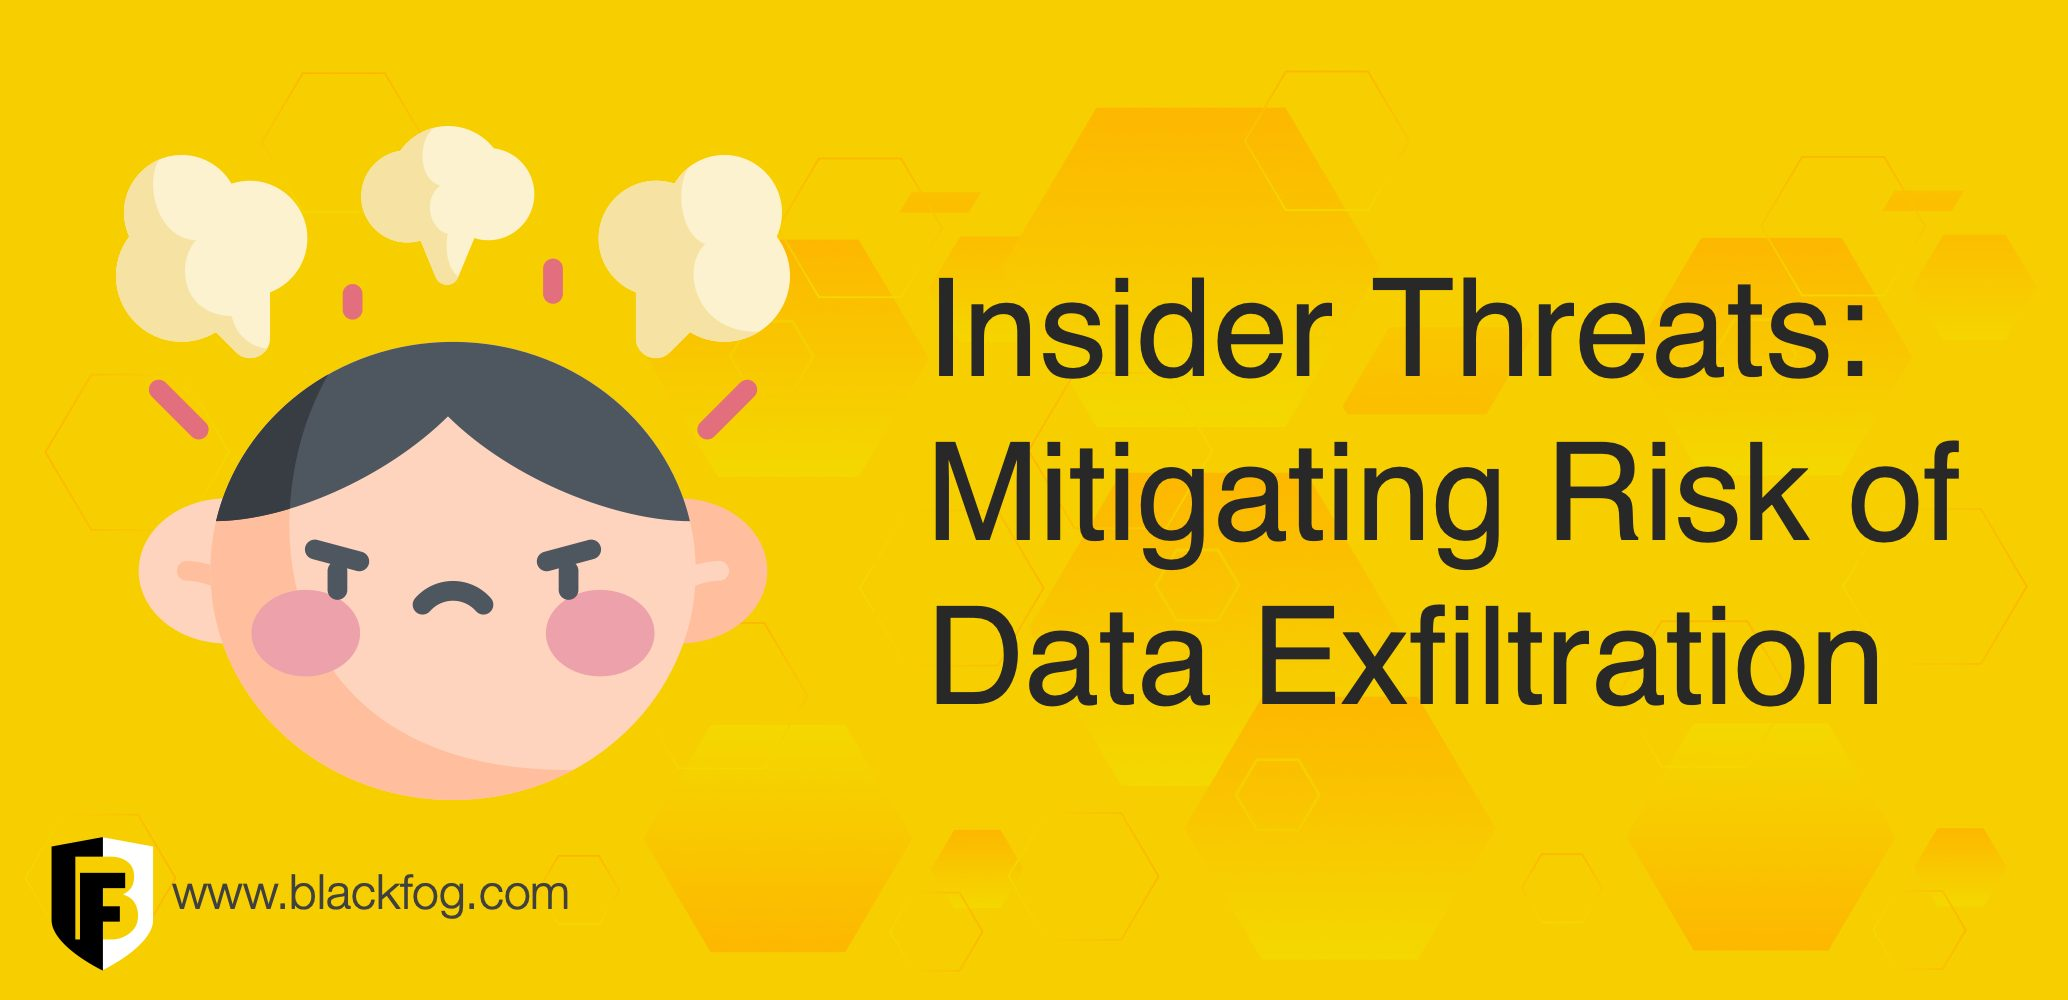 Insider Threats: Mitigating the Risks of Data Exfiltration